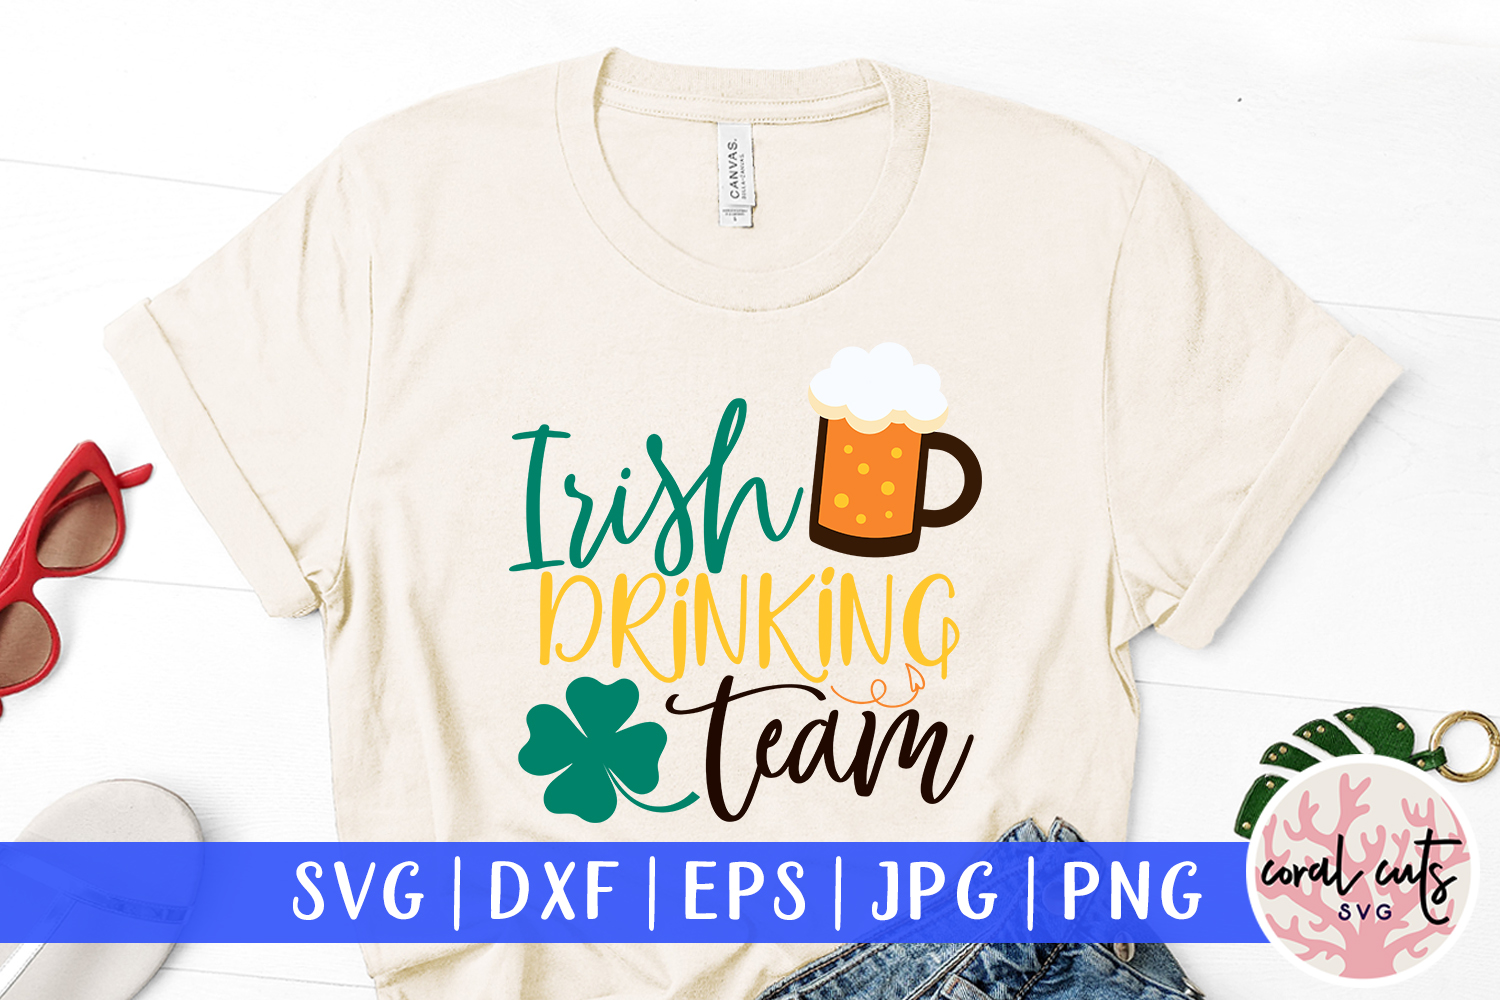 Irish drinking team - St. Patrick's Day SVG EPS DXF PNG example image 1